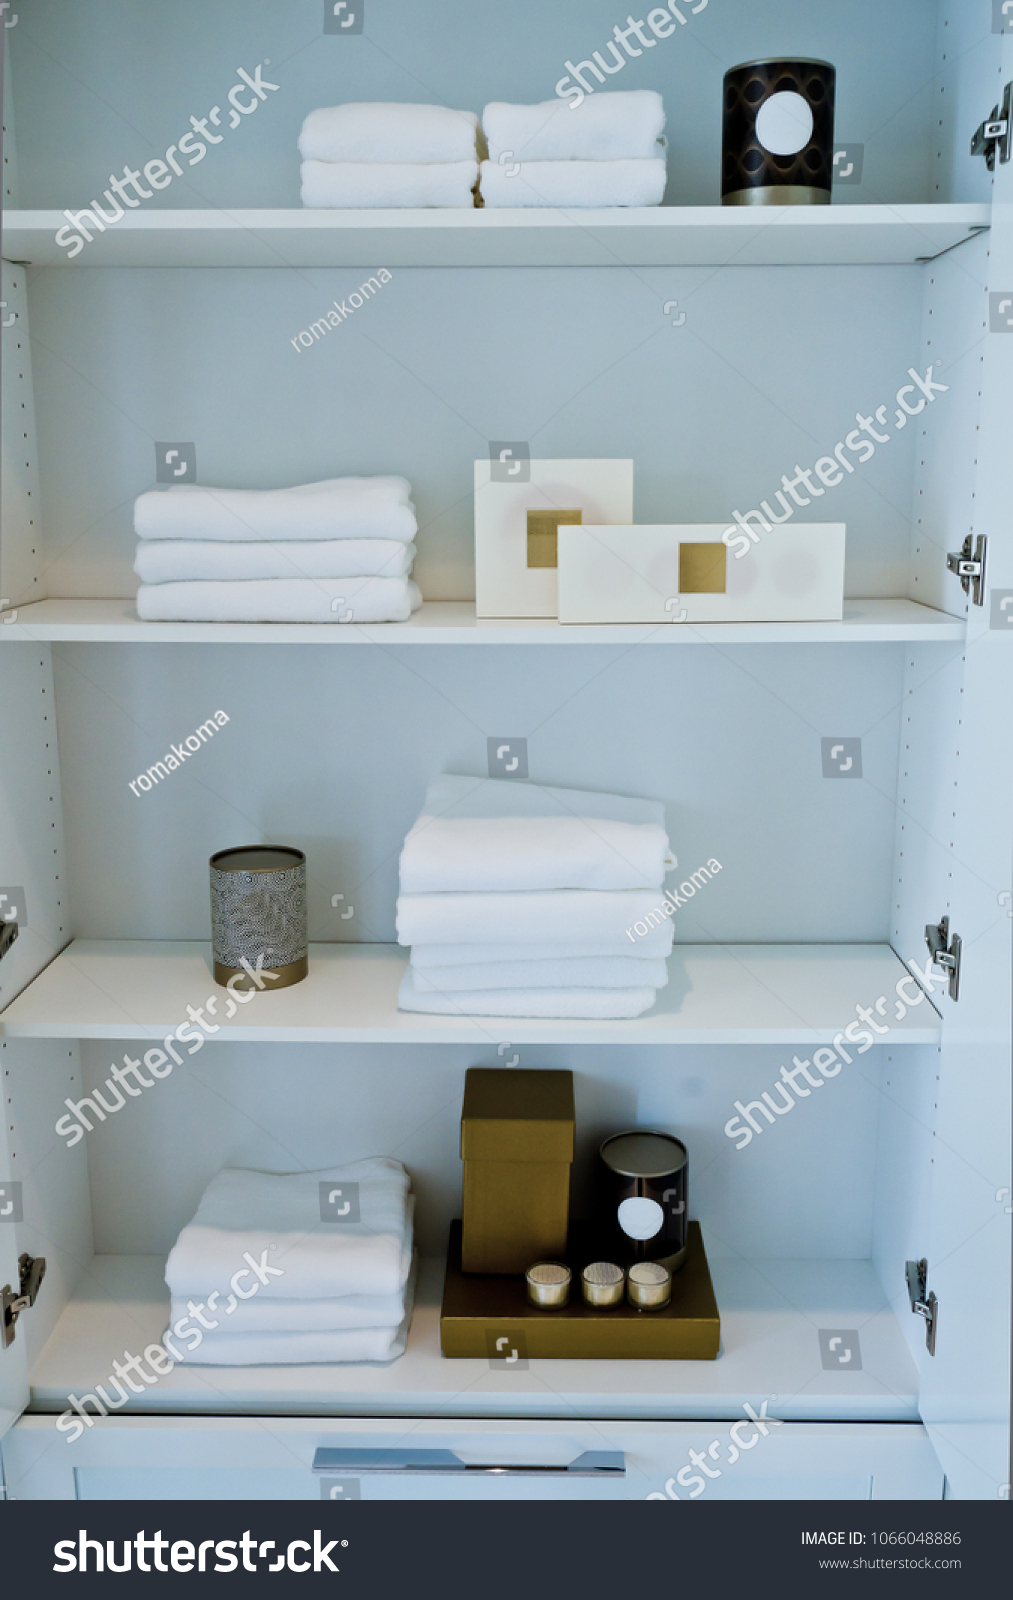 Bathroom Cabinet Racks Well Organized Accessories Stock Photo ...